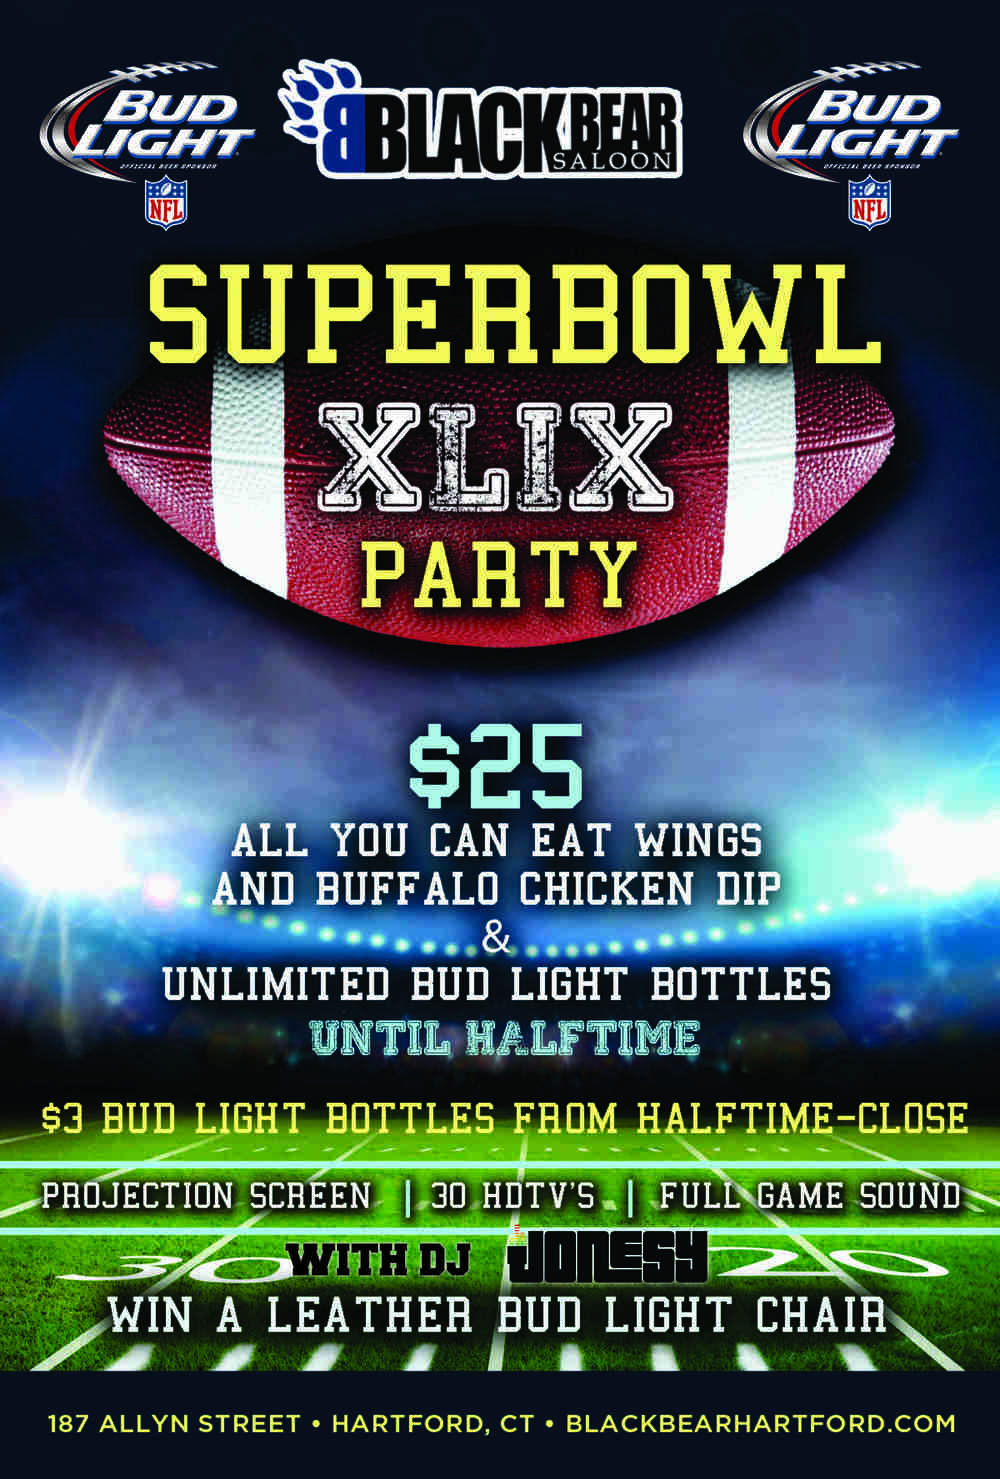 SUPER BOWL SUNDAY JOIN US AT BLACK BEAR FOR THE GAME! $25 BUYS YOU ALL YOU CAN EAT WINGS & BUFFALO CHICKEN DIP + UNLIMITED BUD LIGHT BOTTLESUNTIL HALFTIME. $3 BUD LIGHT BOTTLES FROM HALFTIME - CLOSE. LEATHER BUD LIGHT CHAIR GIVEAWAY! MUSIC BY DJ JONESYDURING COMMERCIAL BREAKS,HALFTIME + POST GAME.   FACEBOOK INVITE